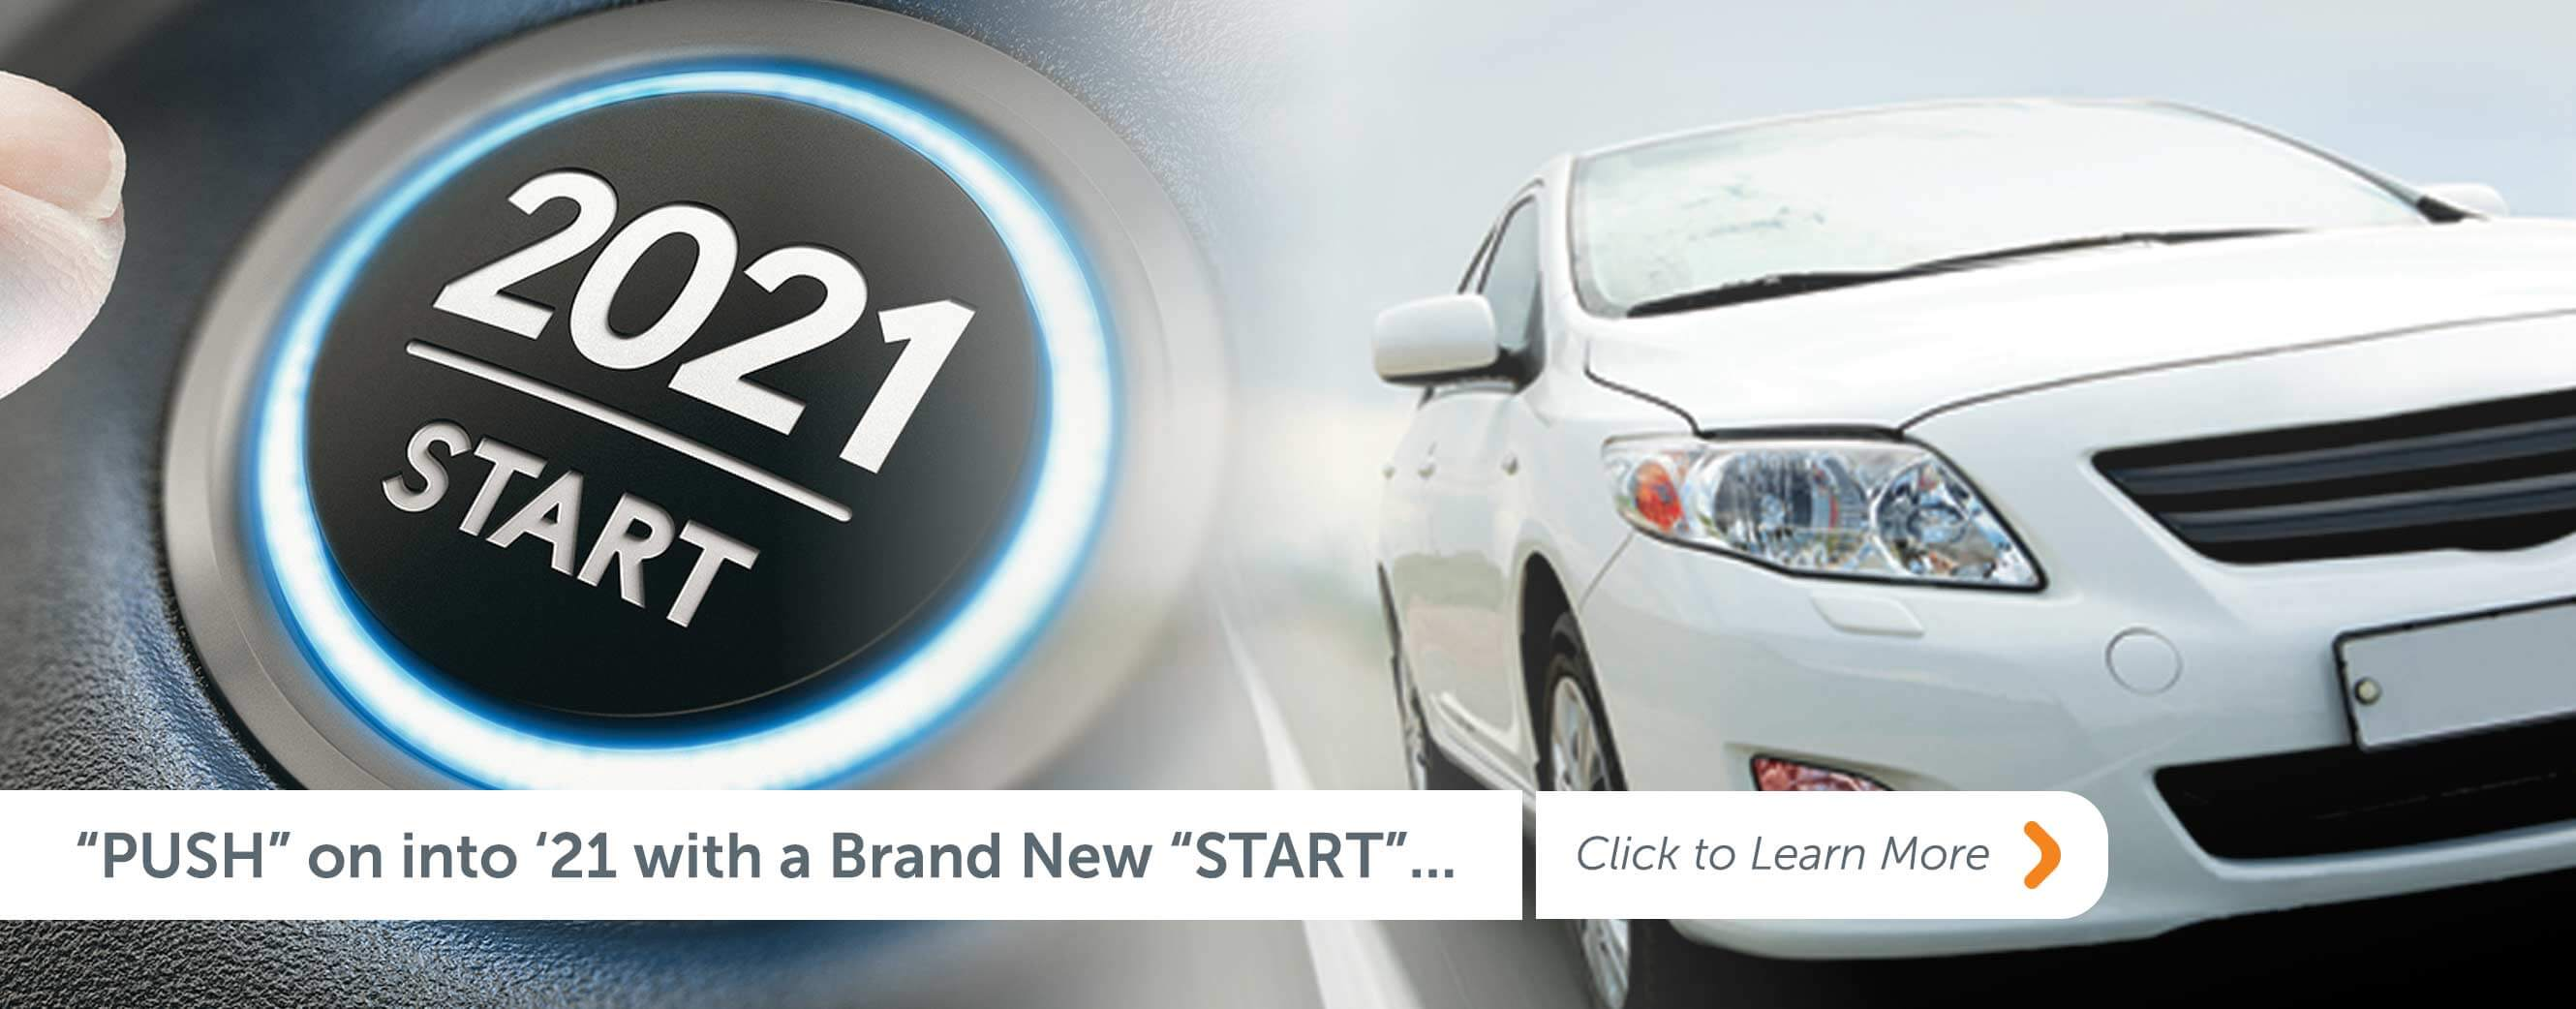 Push on into 21 with a brand new start. Click to learn more!